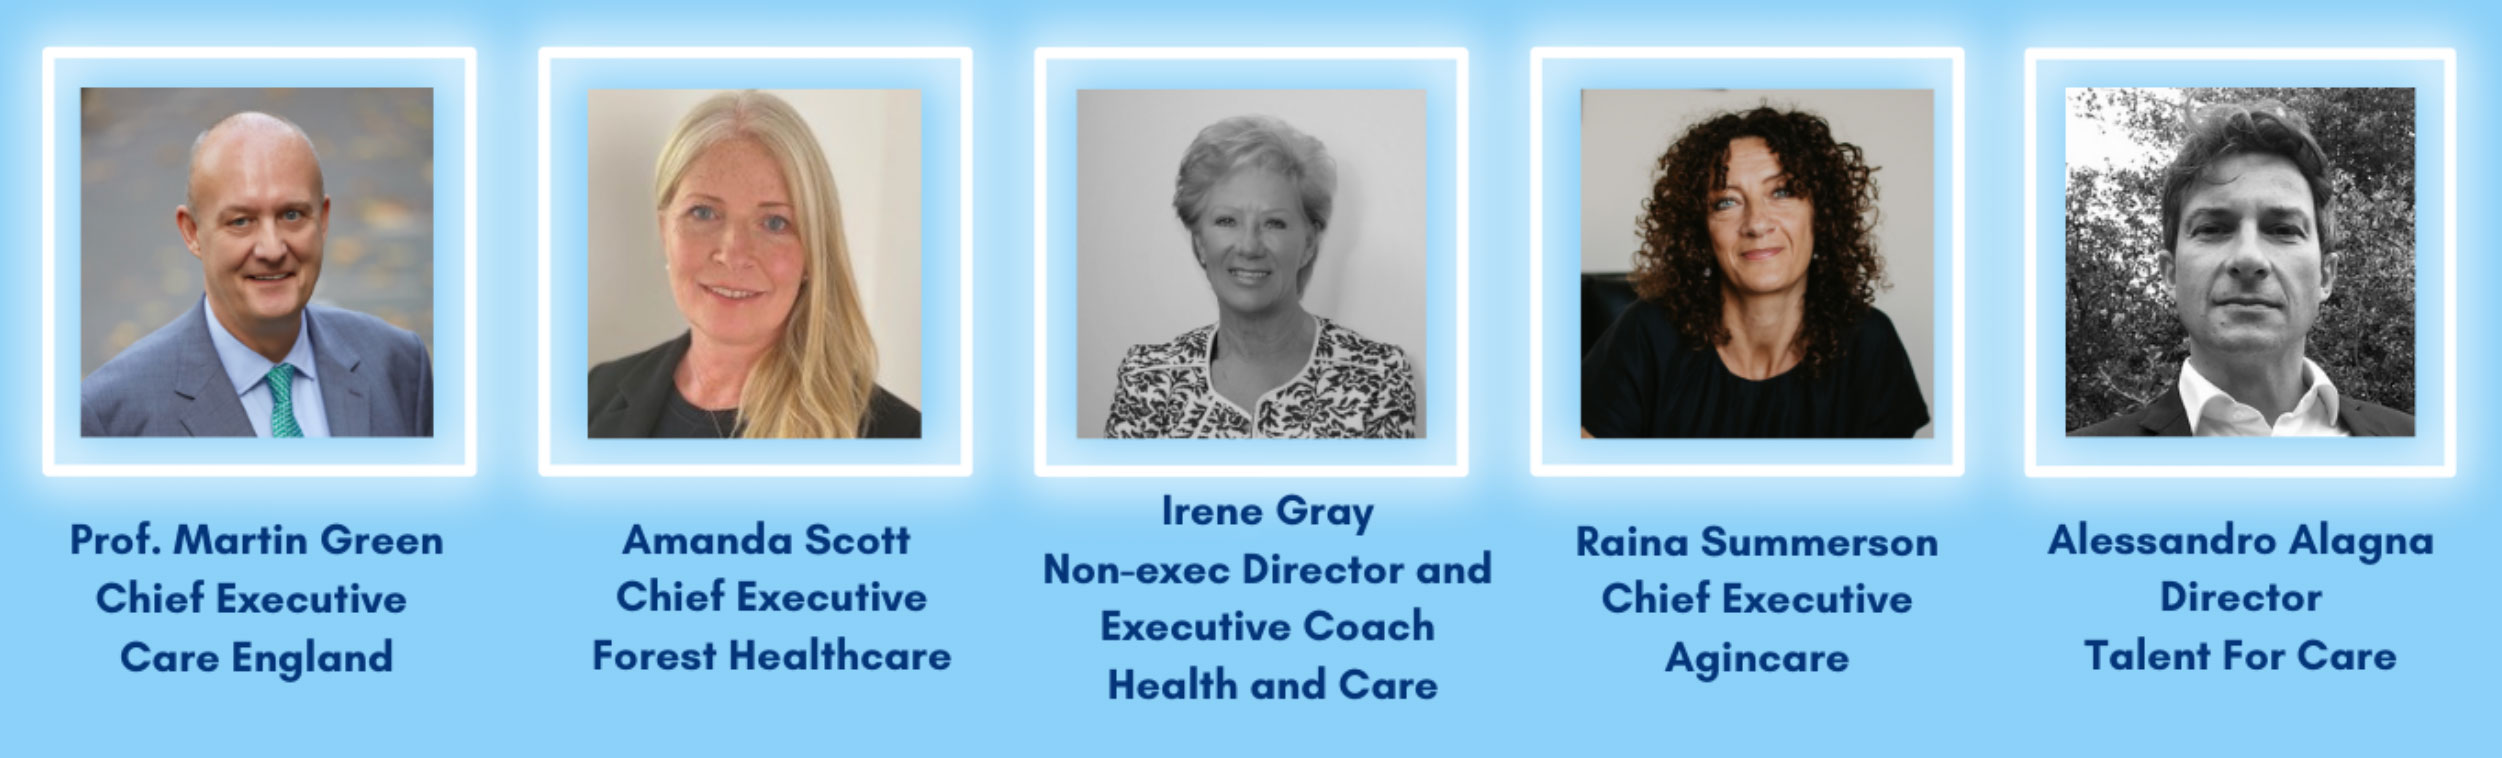 Talent for Care - Guest Panel